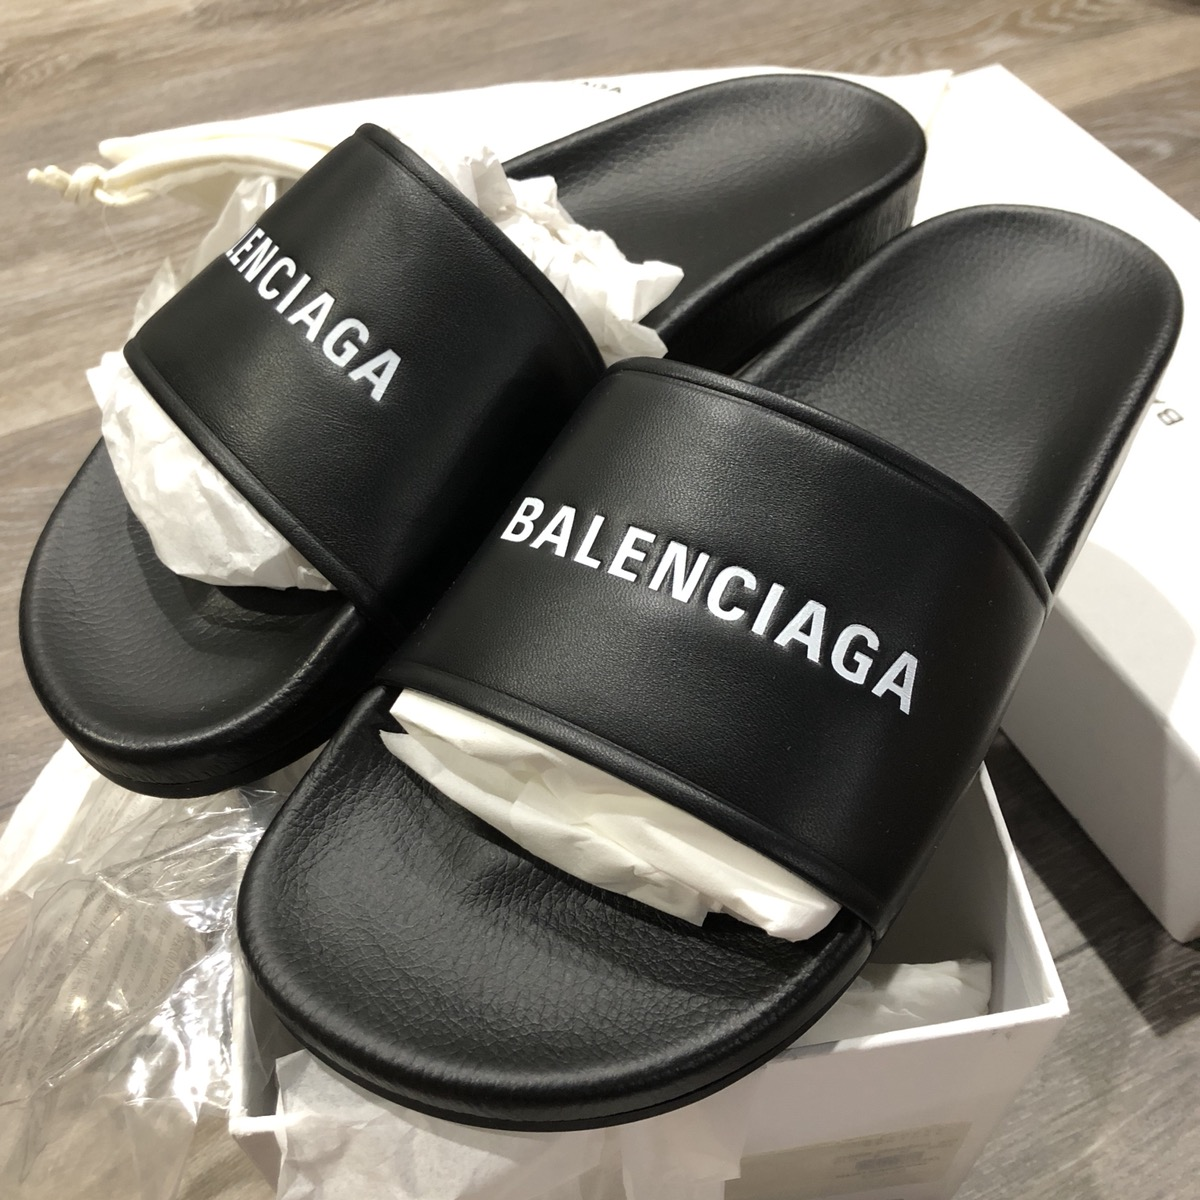 0d2b41f6b9ed Balenciaga ×.  FINAL PRICE  NIB - Balenciaga Logo Leather Pool Slides. Size   US 9 ...